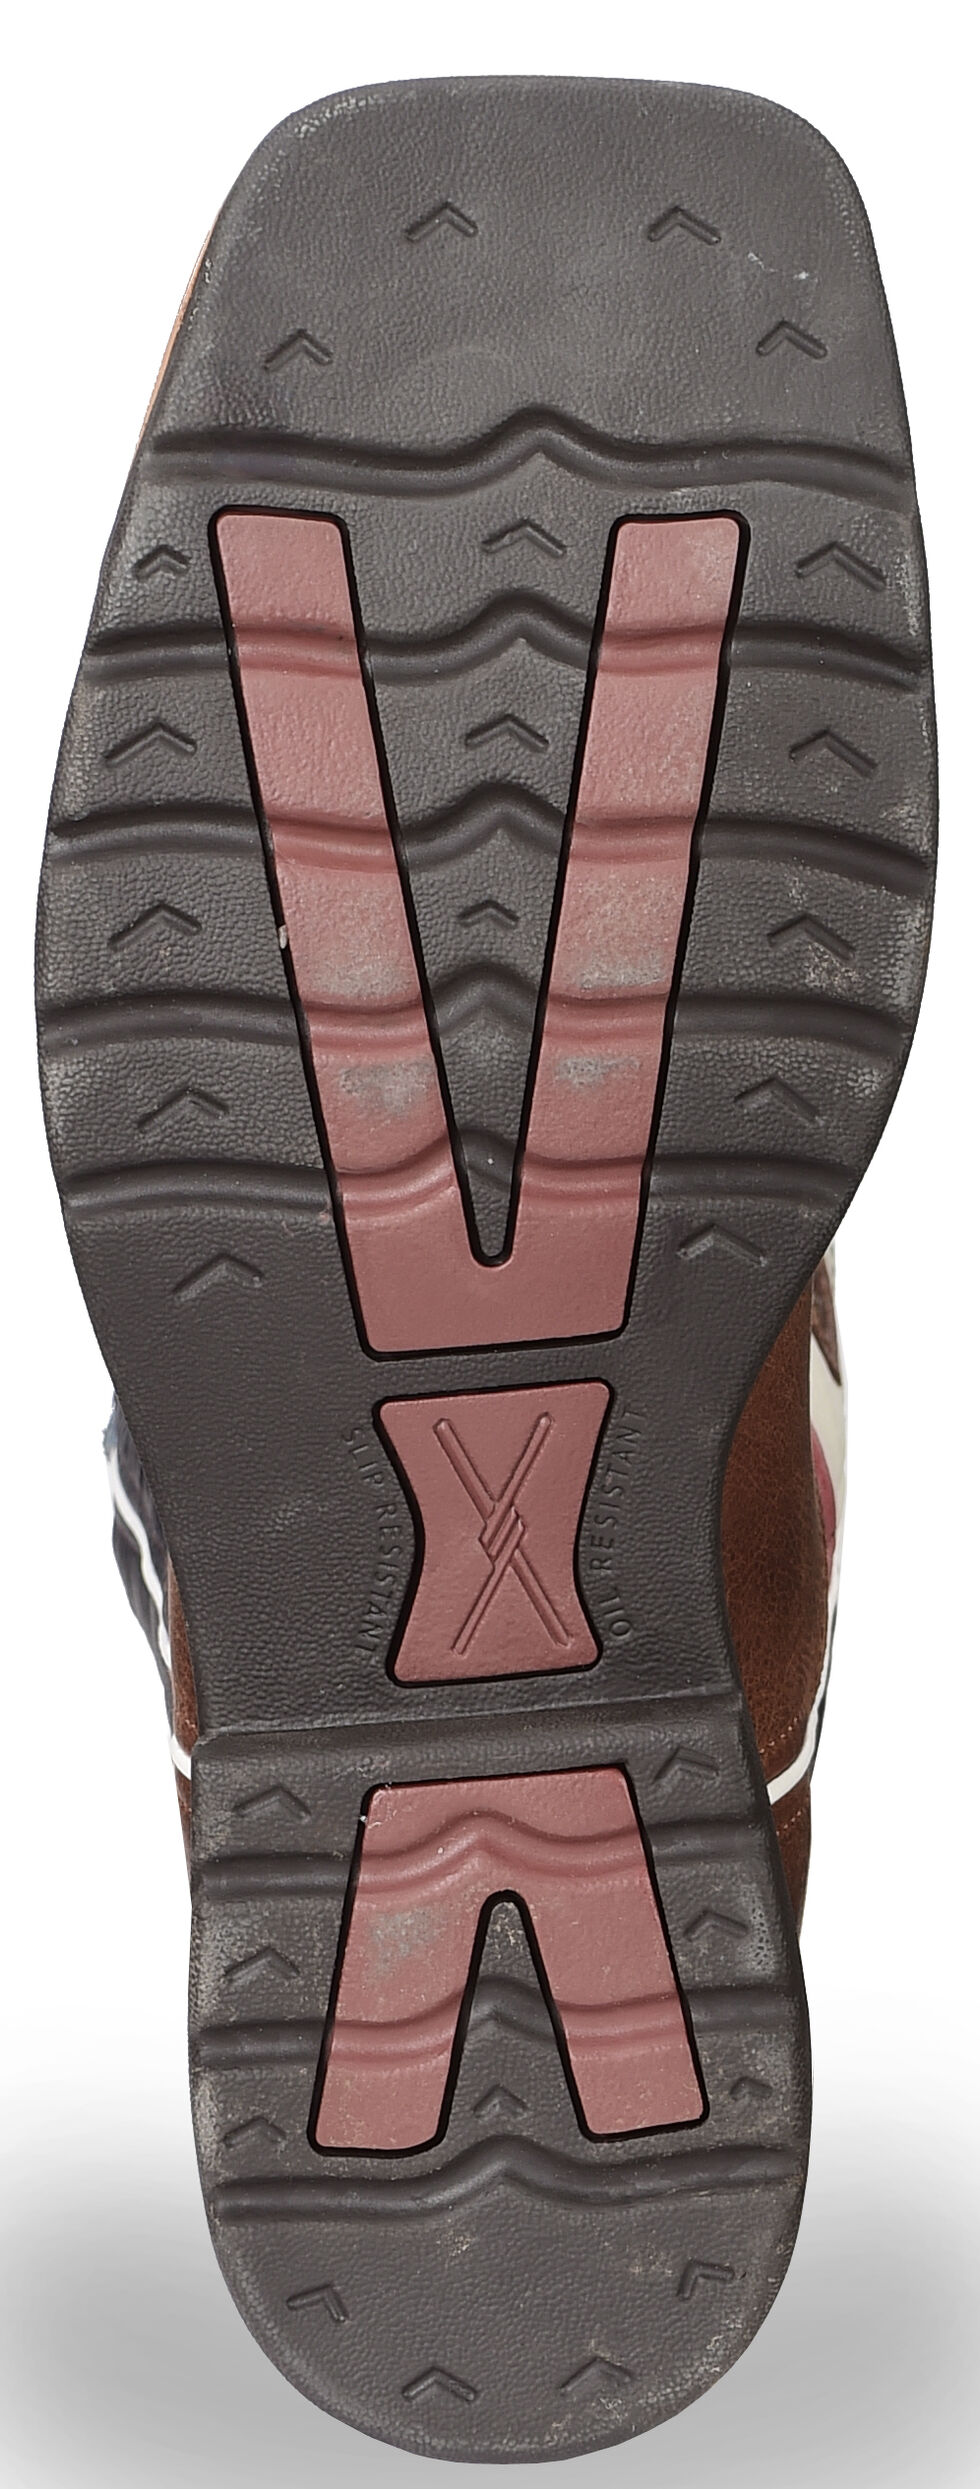 Twisted X Lite Texas Flag Pull-On Work Boots - Steel Toe, Brown, hi-res